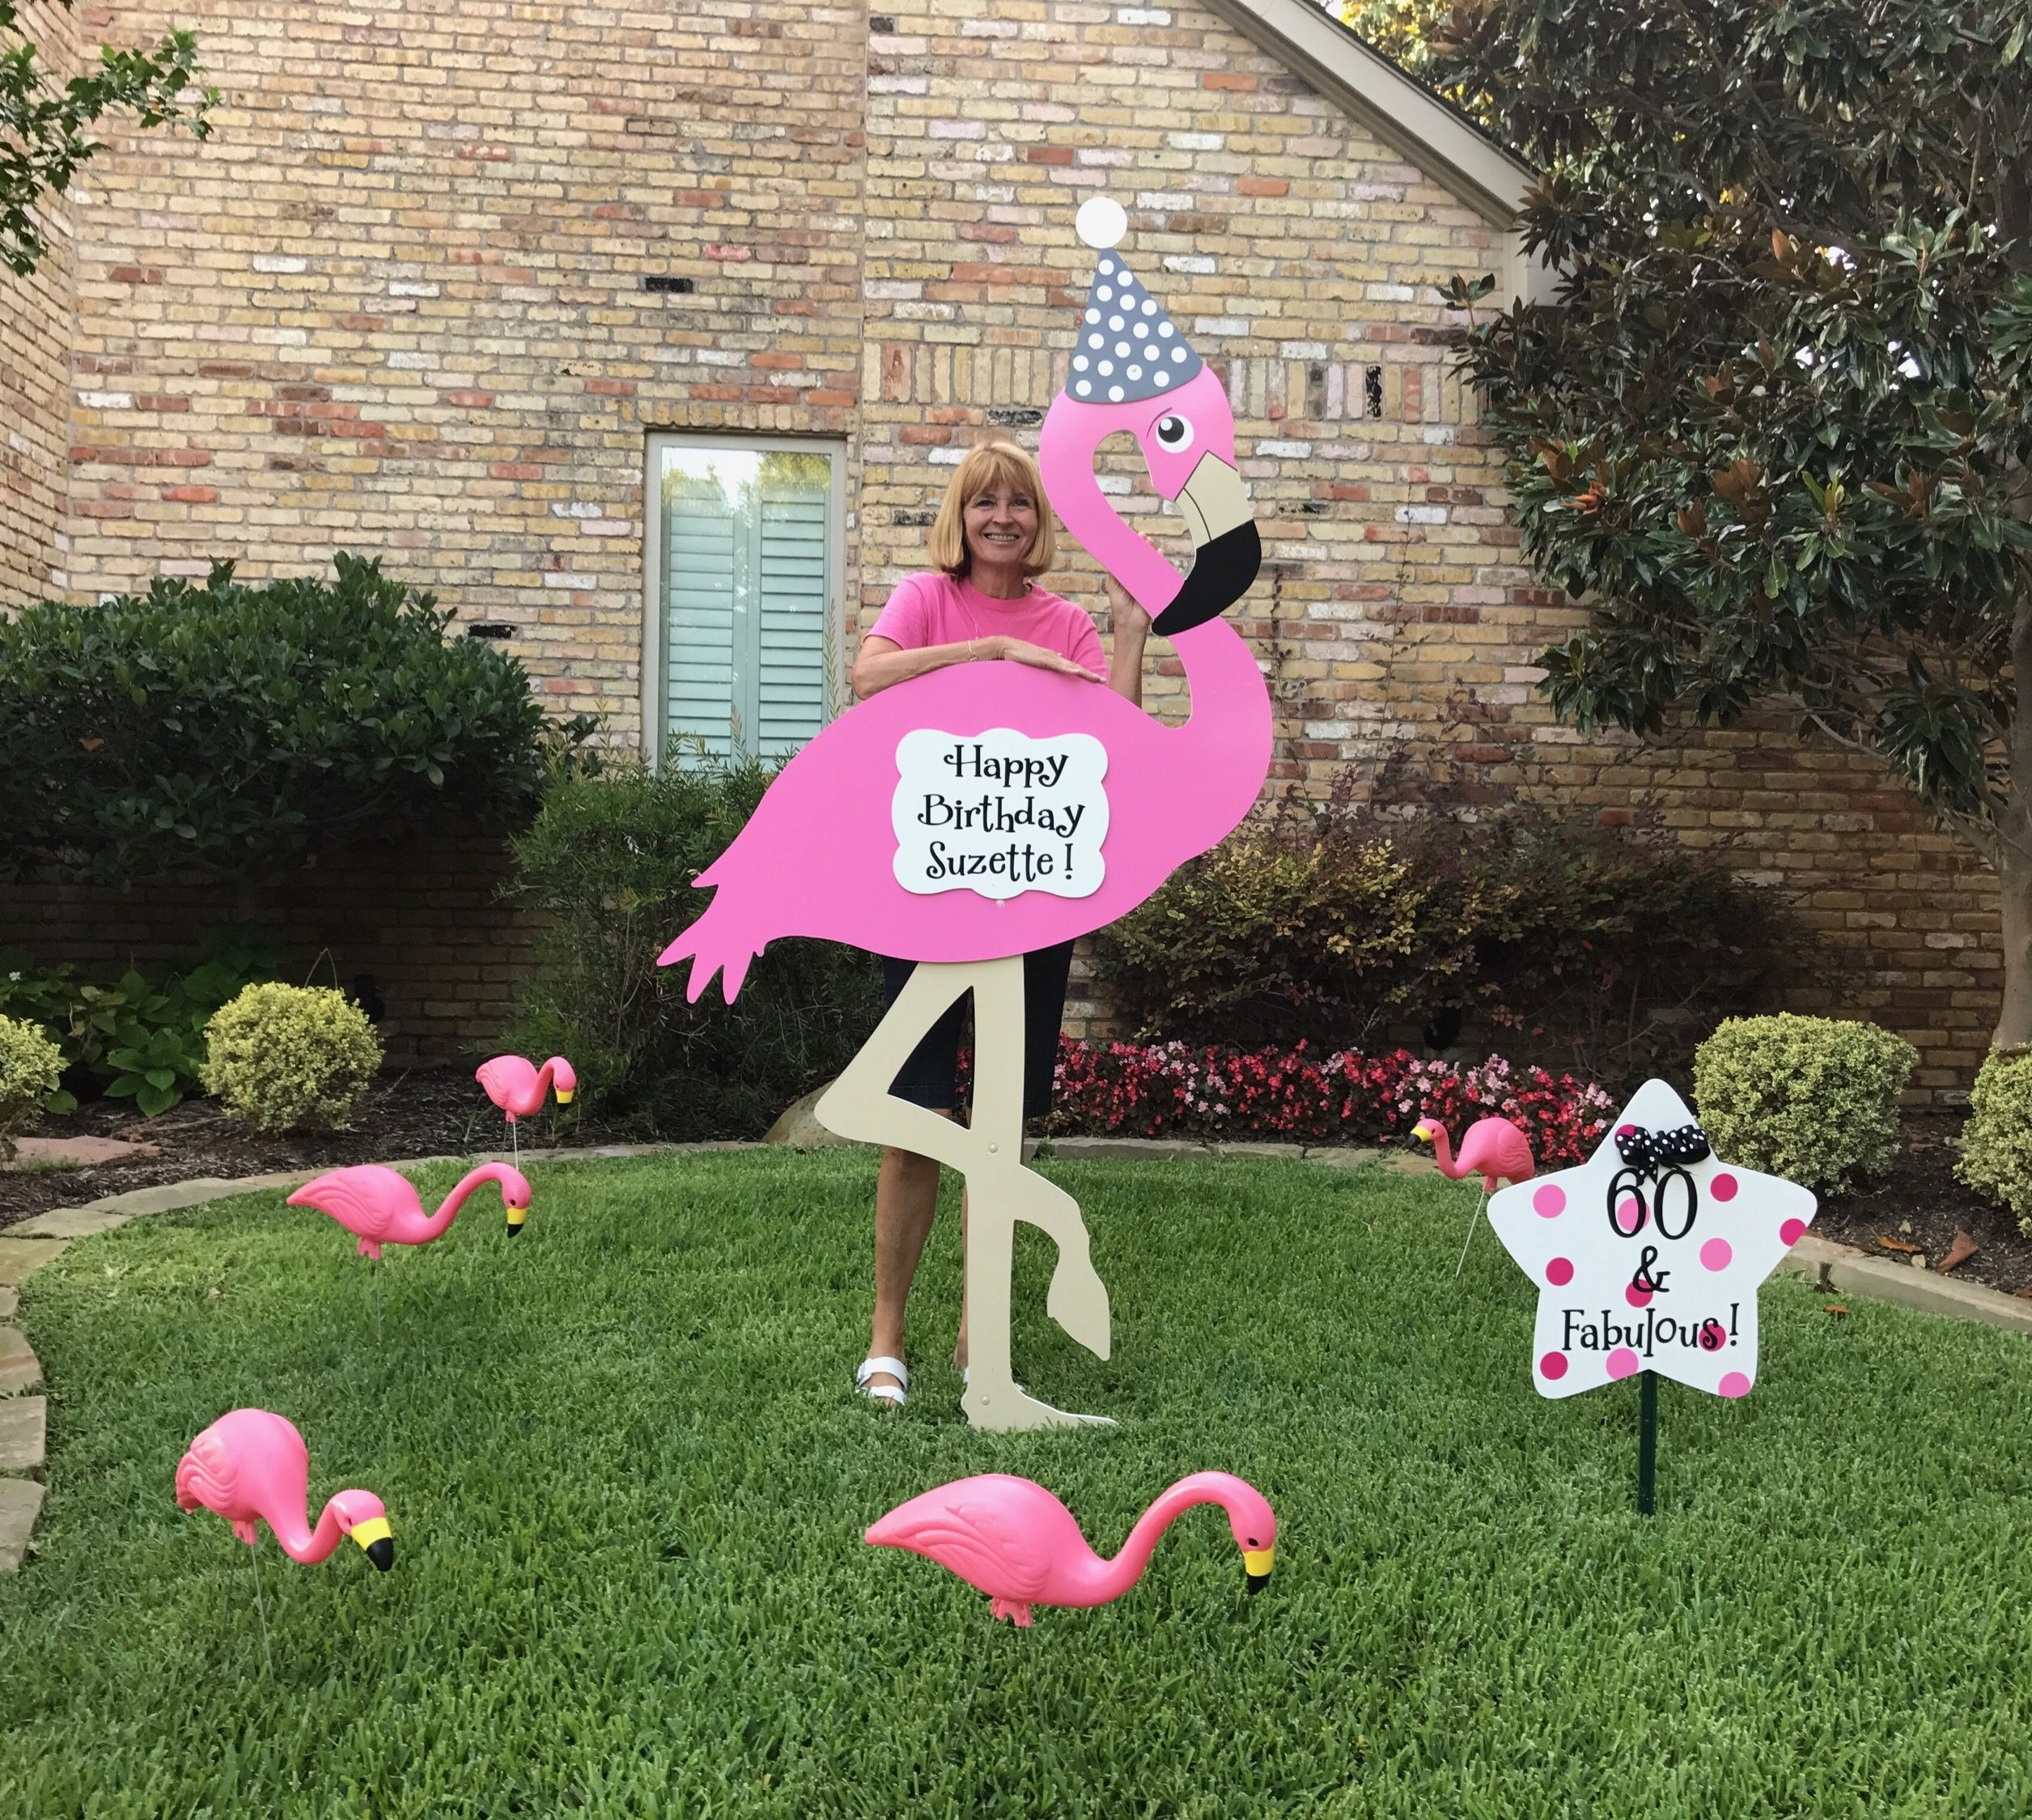 Plano Texas Happy 60th Birthday Suzette Here S To 60 Fabulous Storks More Of Dallas And Abilene Dallas 214 9 Birthday Lawn Signs Stork Yard Sign Stork